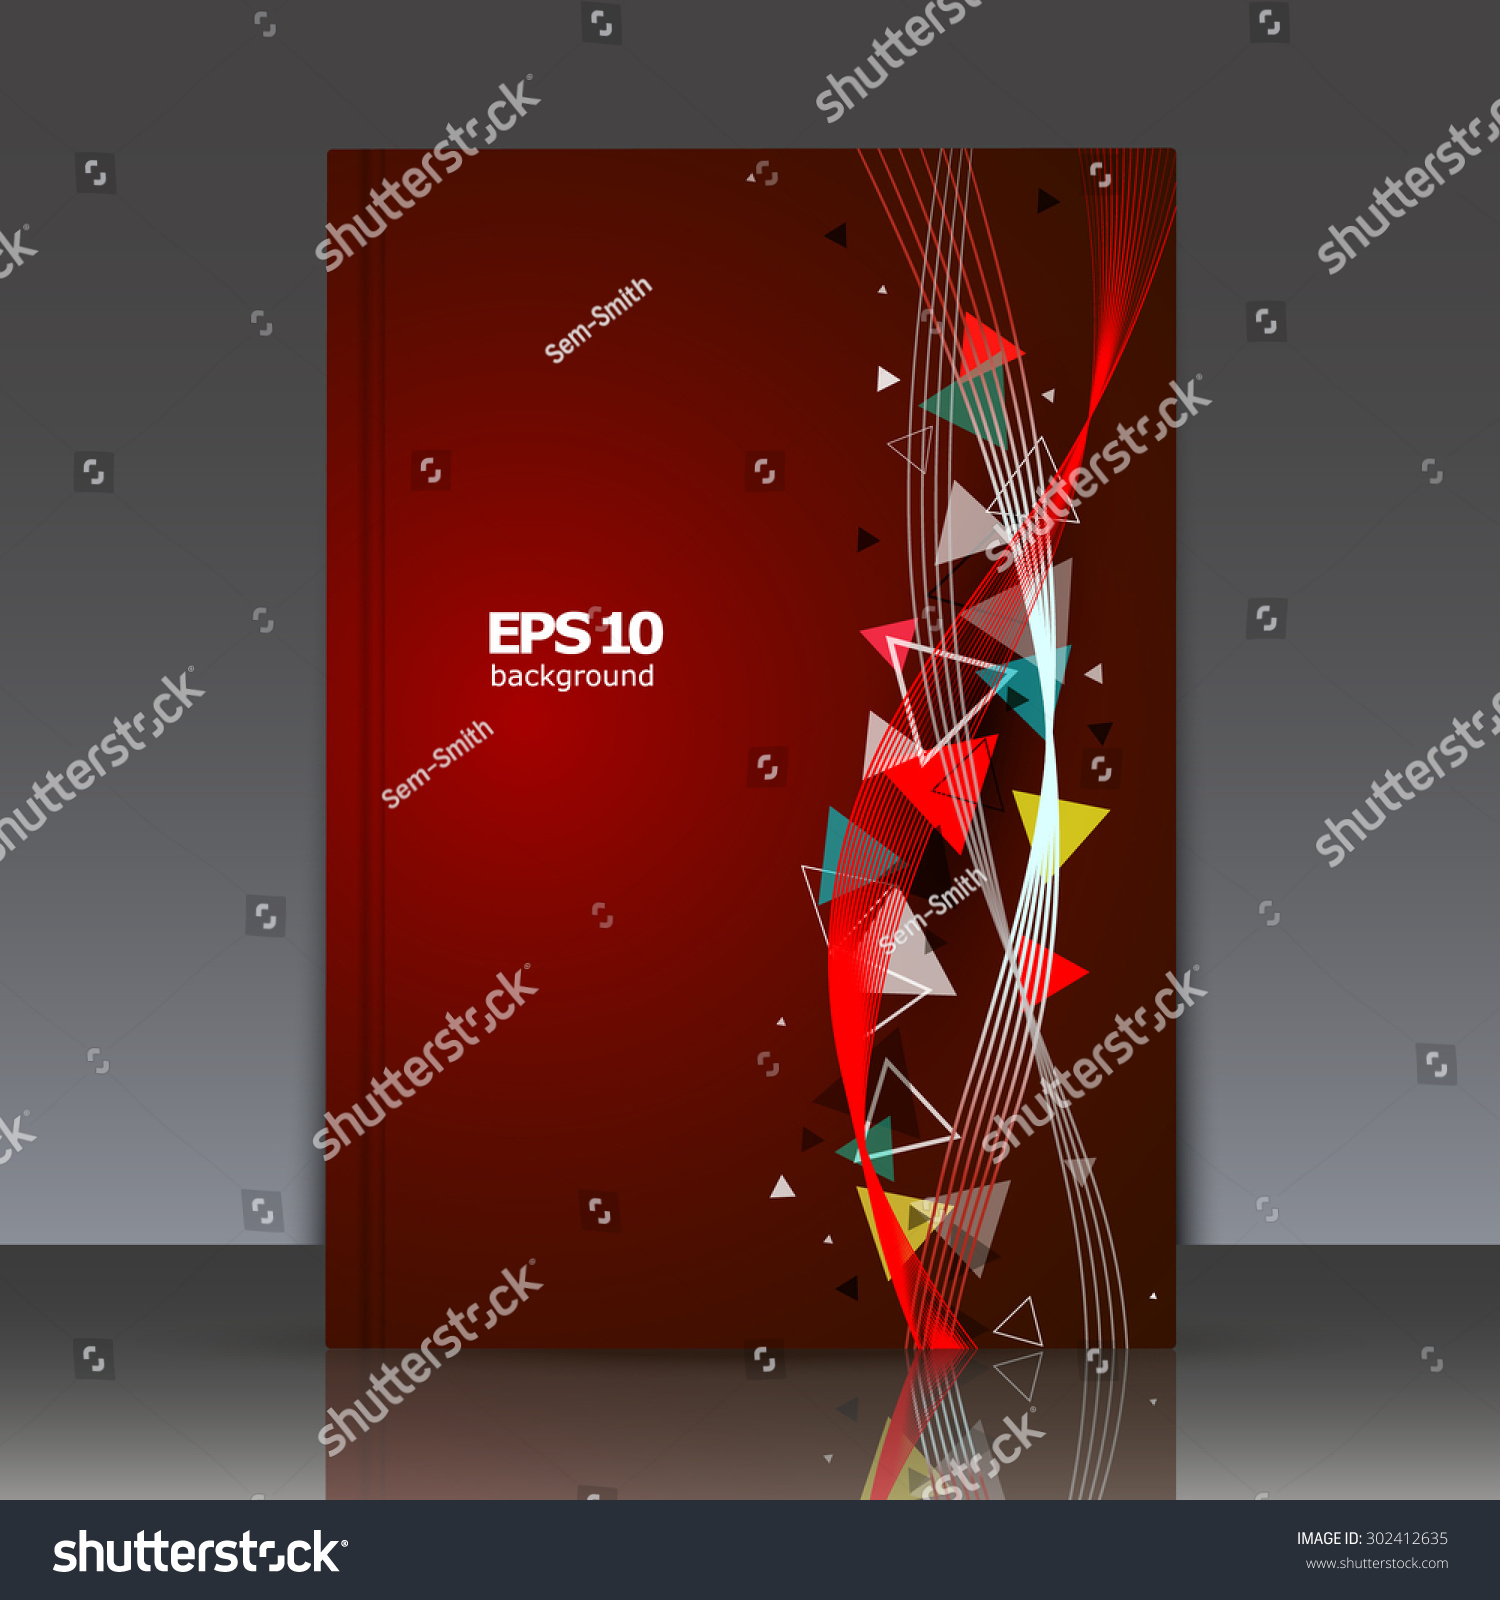 Abstract Book Cover Background : Abstract composition brochure wave background eps